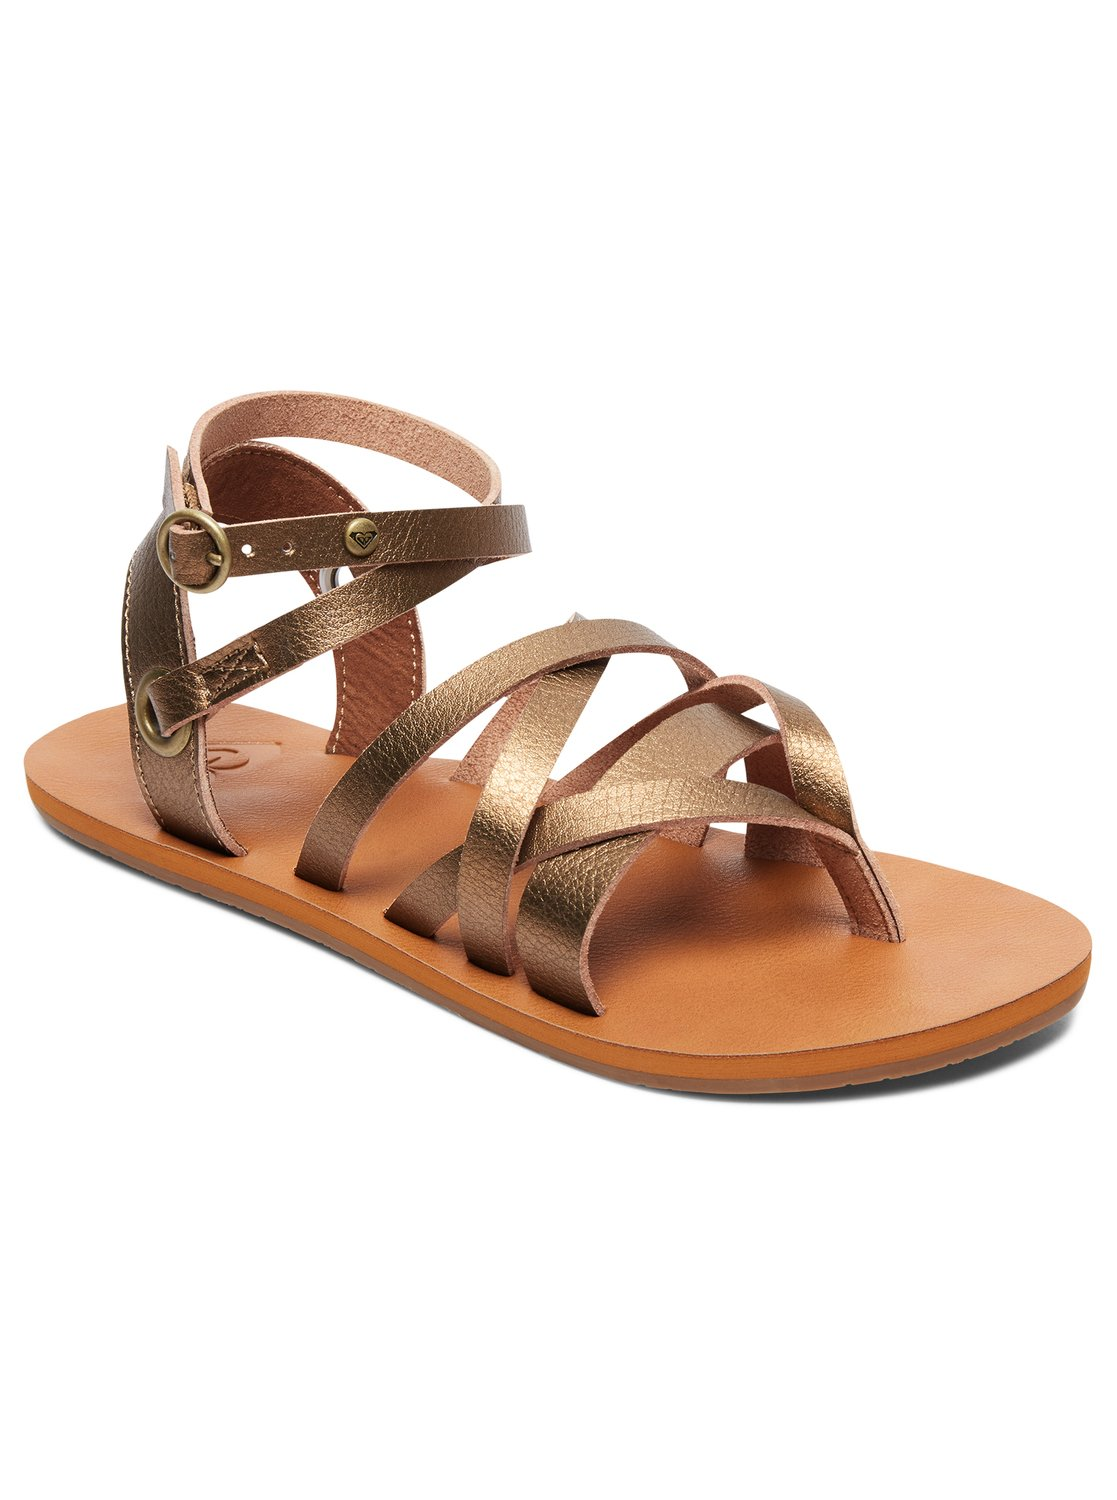 Bailey Product Sandal Arjl200650 Roxy Tendencies Sandals Footbed 2 Strap Brown 40 0